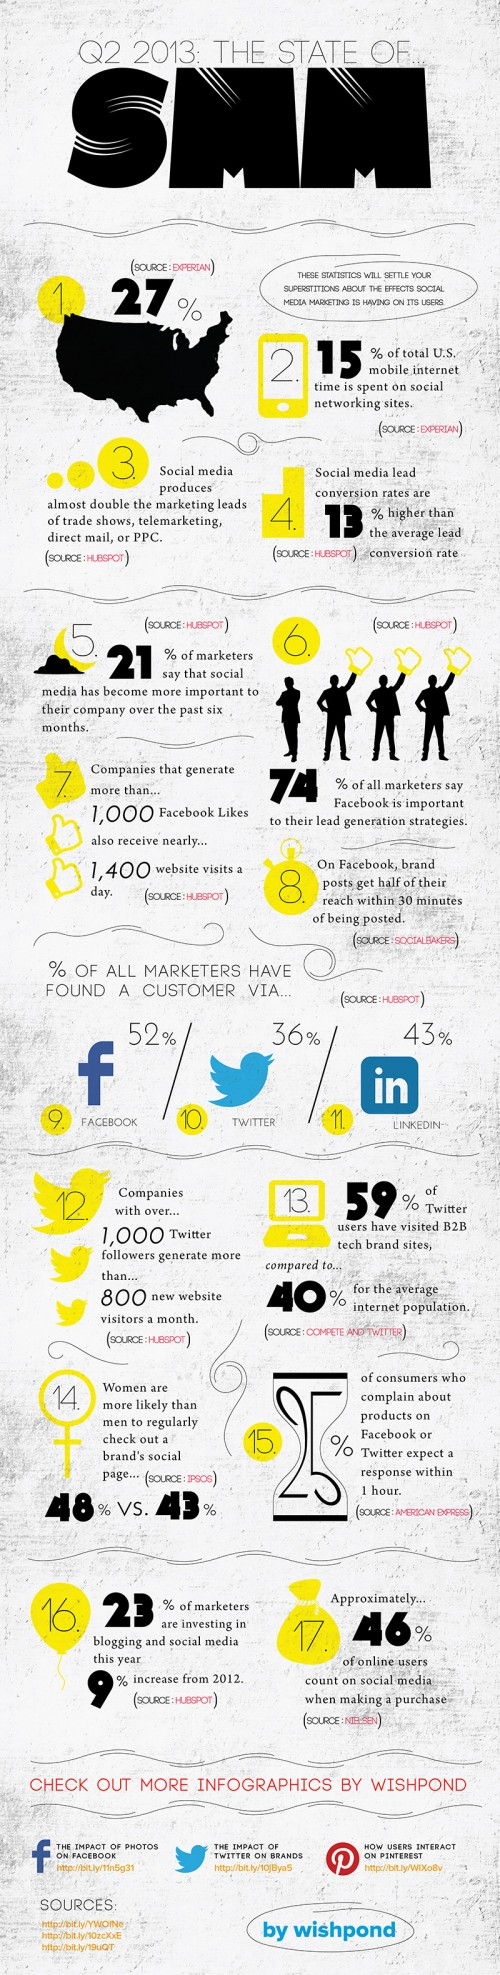 The State Of Social Media Marketing Q2 2013 Infographic